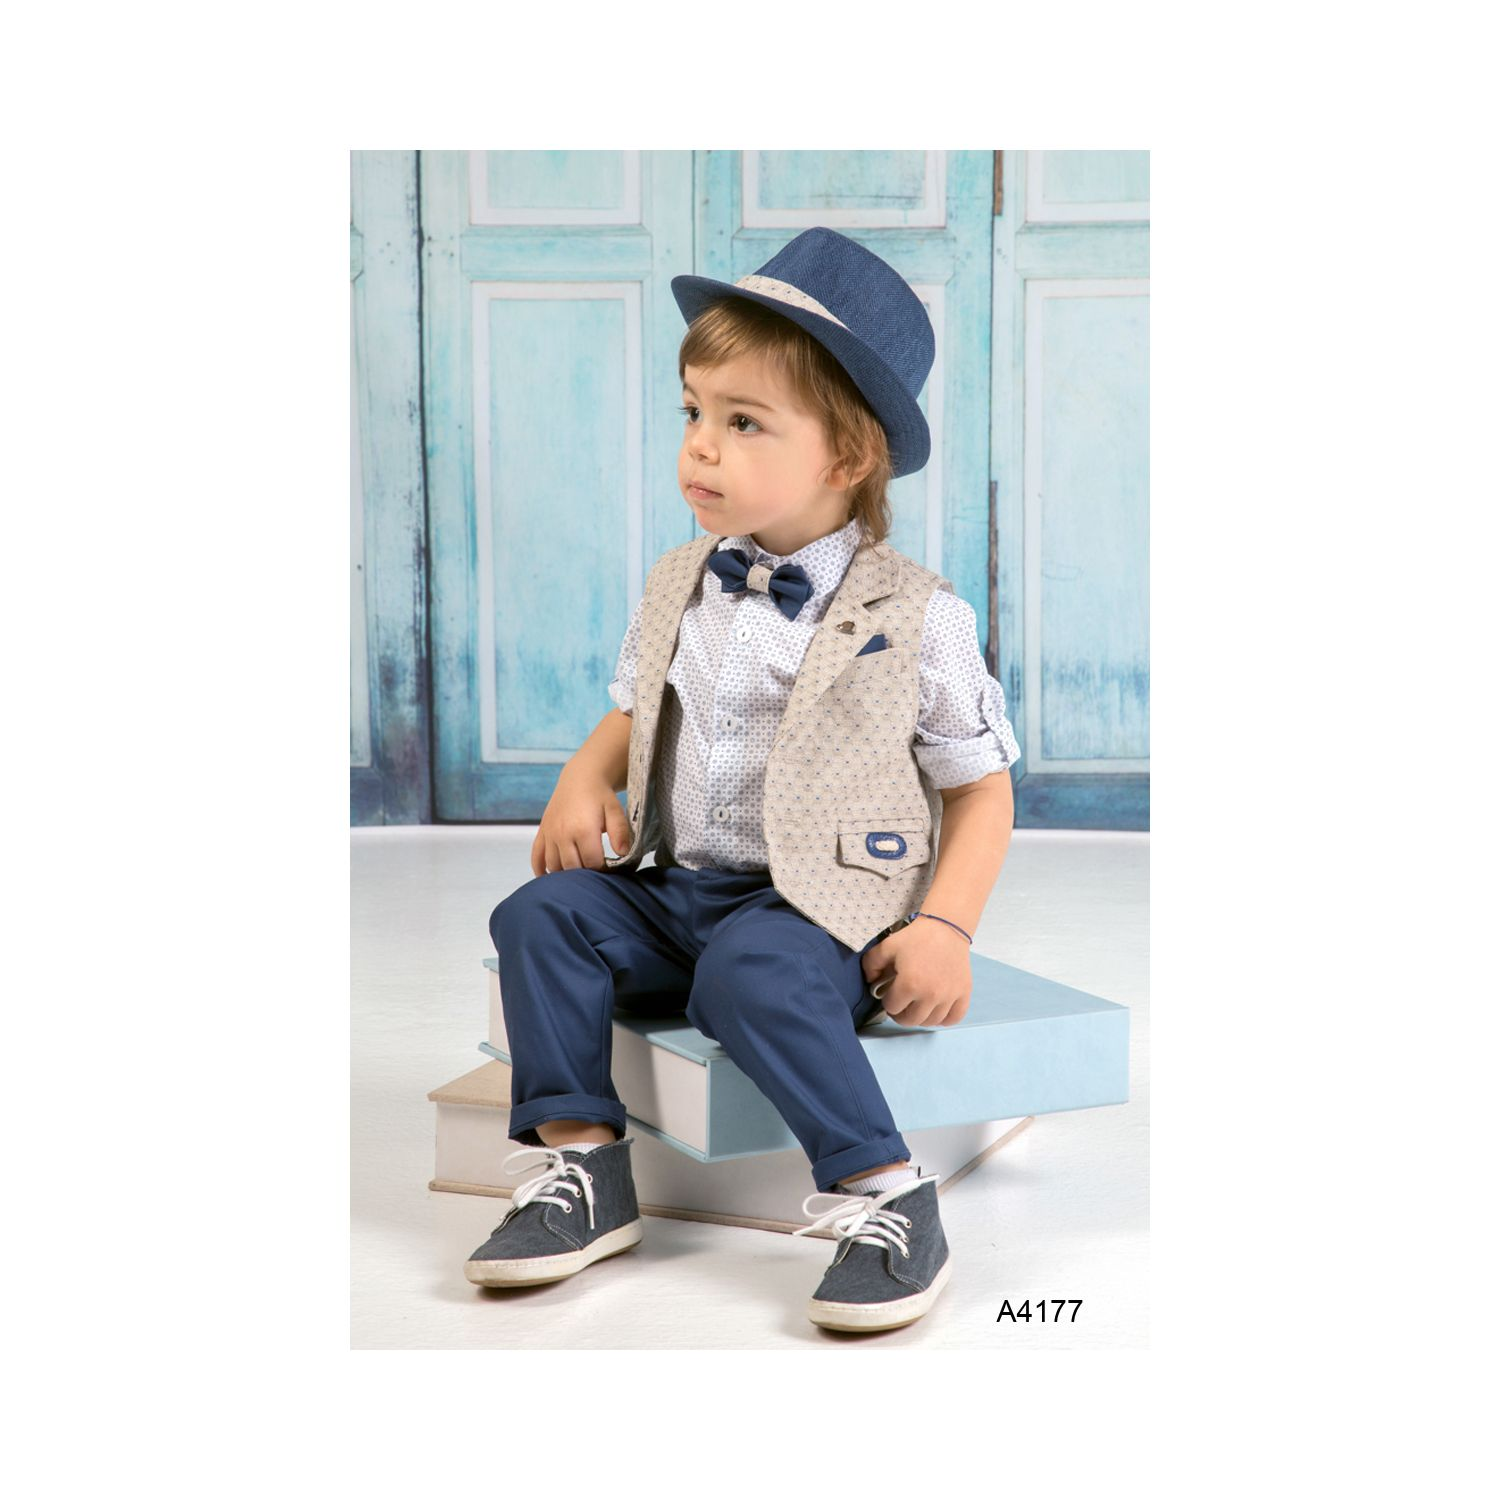 Greek baptism clothes for boys A4177